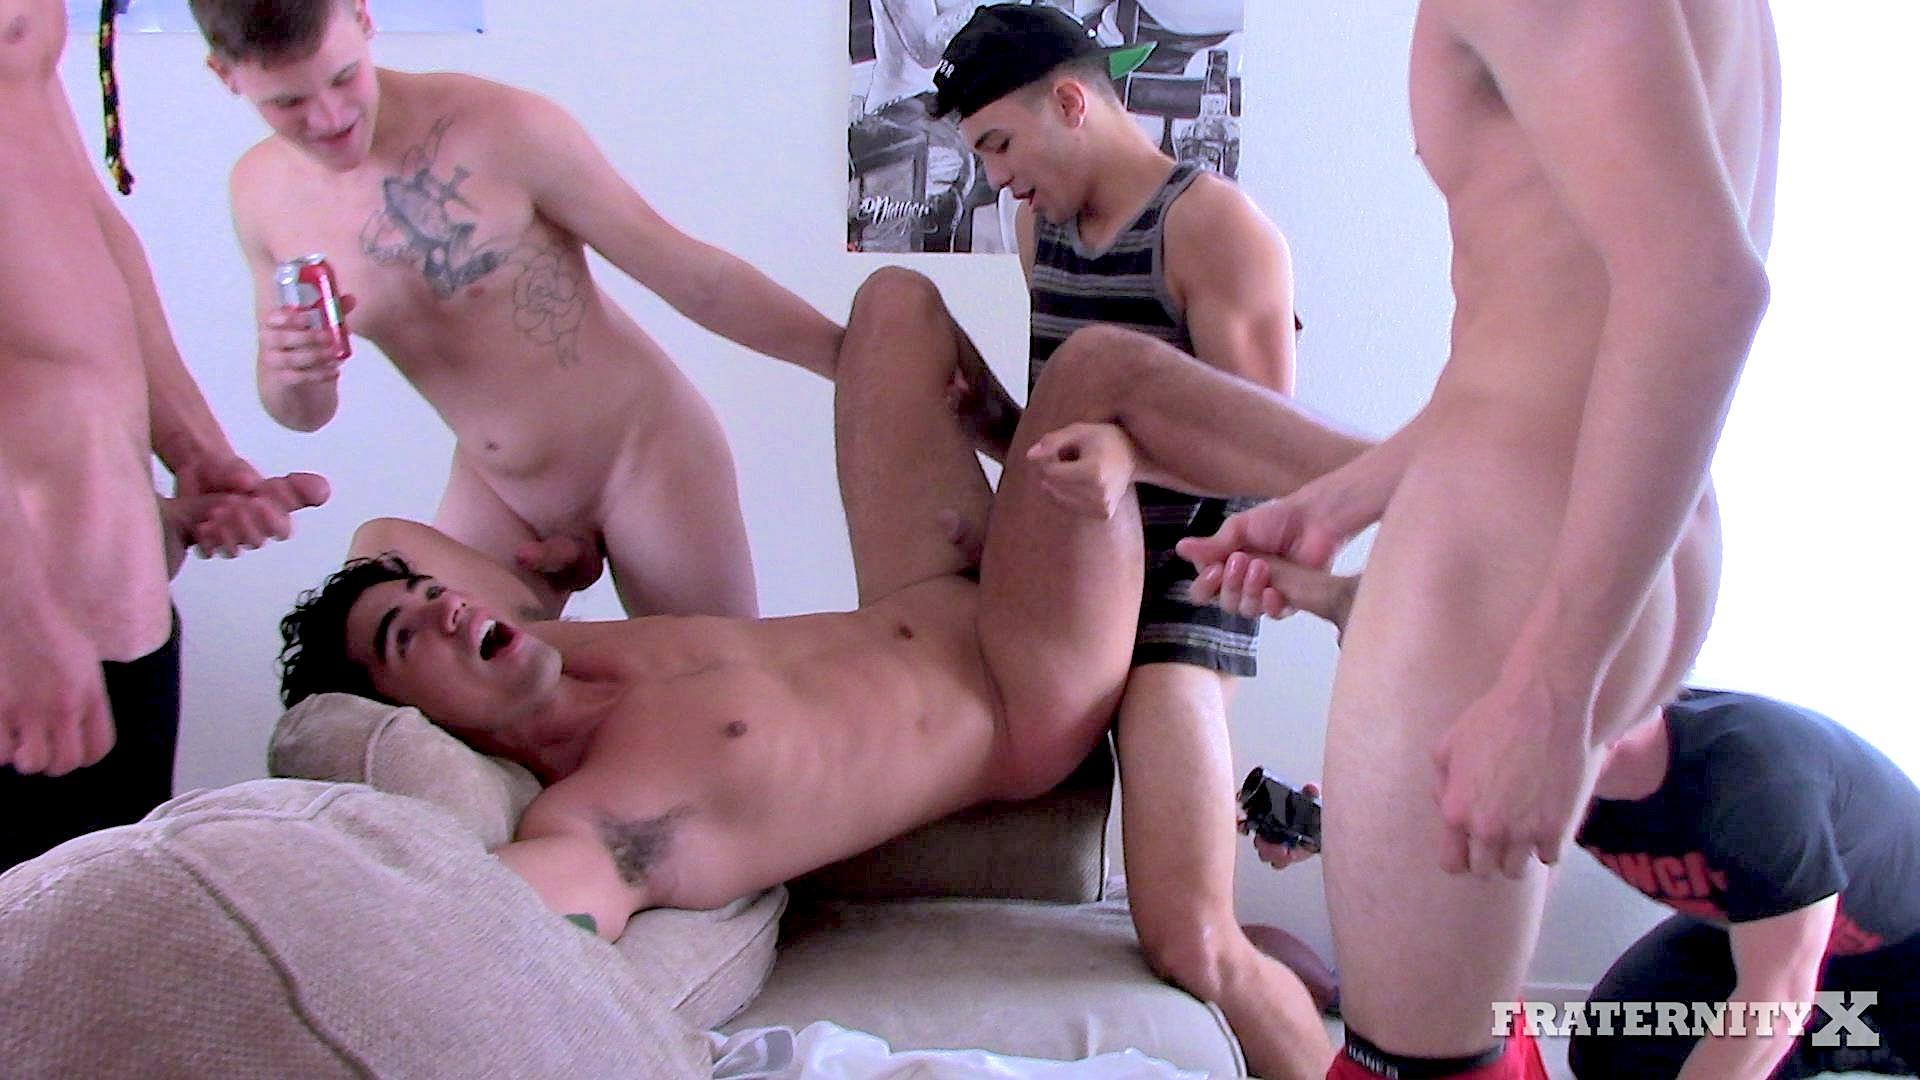 Fraternity-X-Naked-Frat-Guys-With-Big-Dicks-Fucking-Bareback-In-The-Frat-house-04 Drunk and High Frat Boy Takes Four Raw Dicks Up The Ass